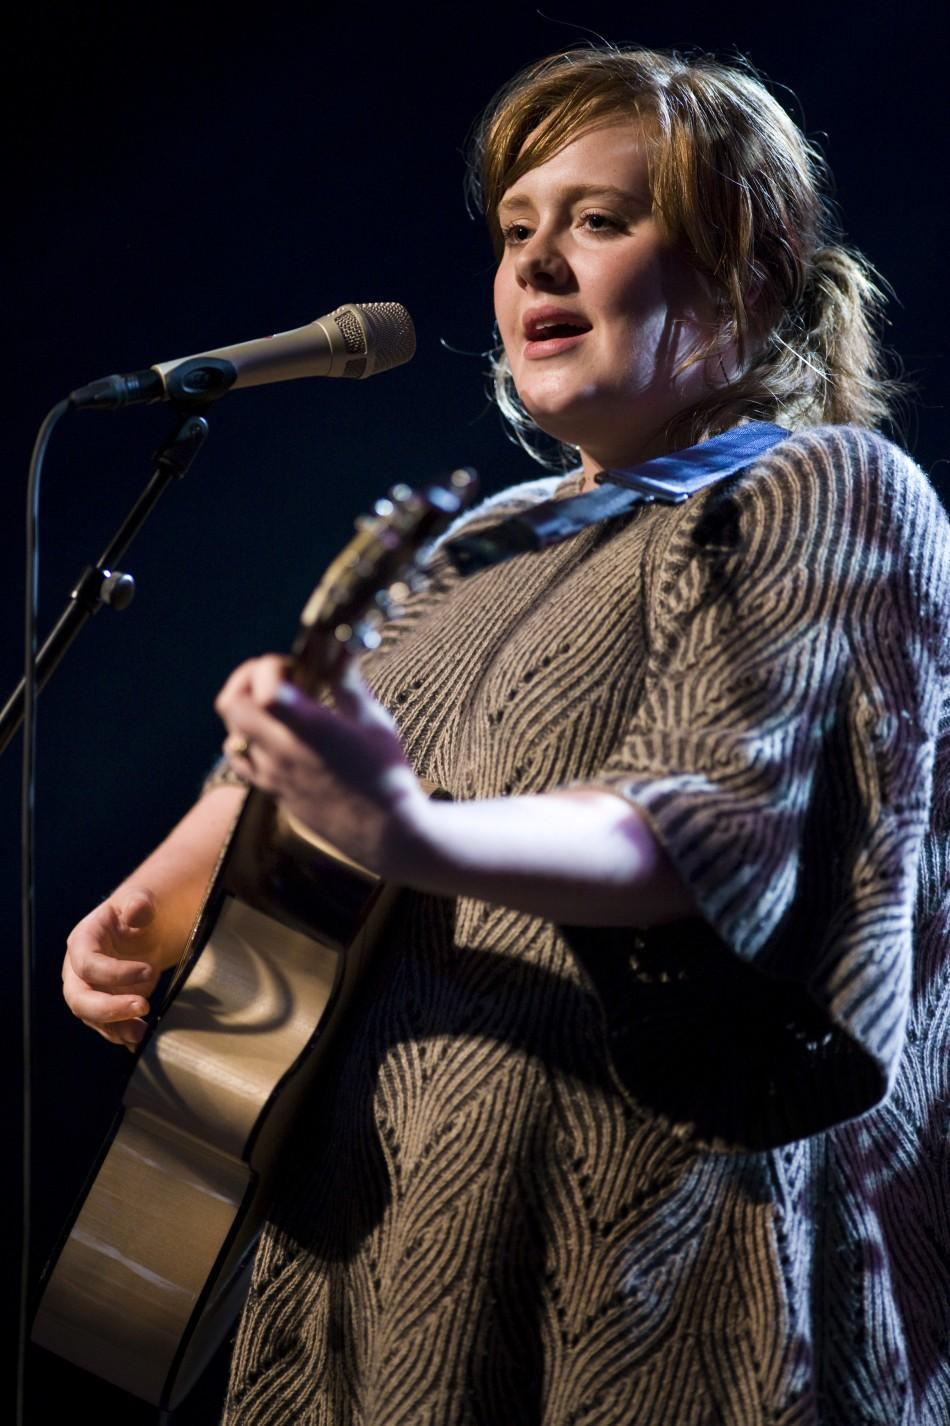 British singer Adele performs at the 42nd Montreux Jazz Festival